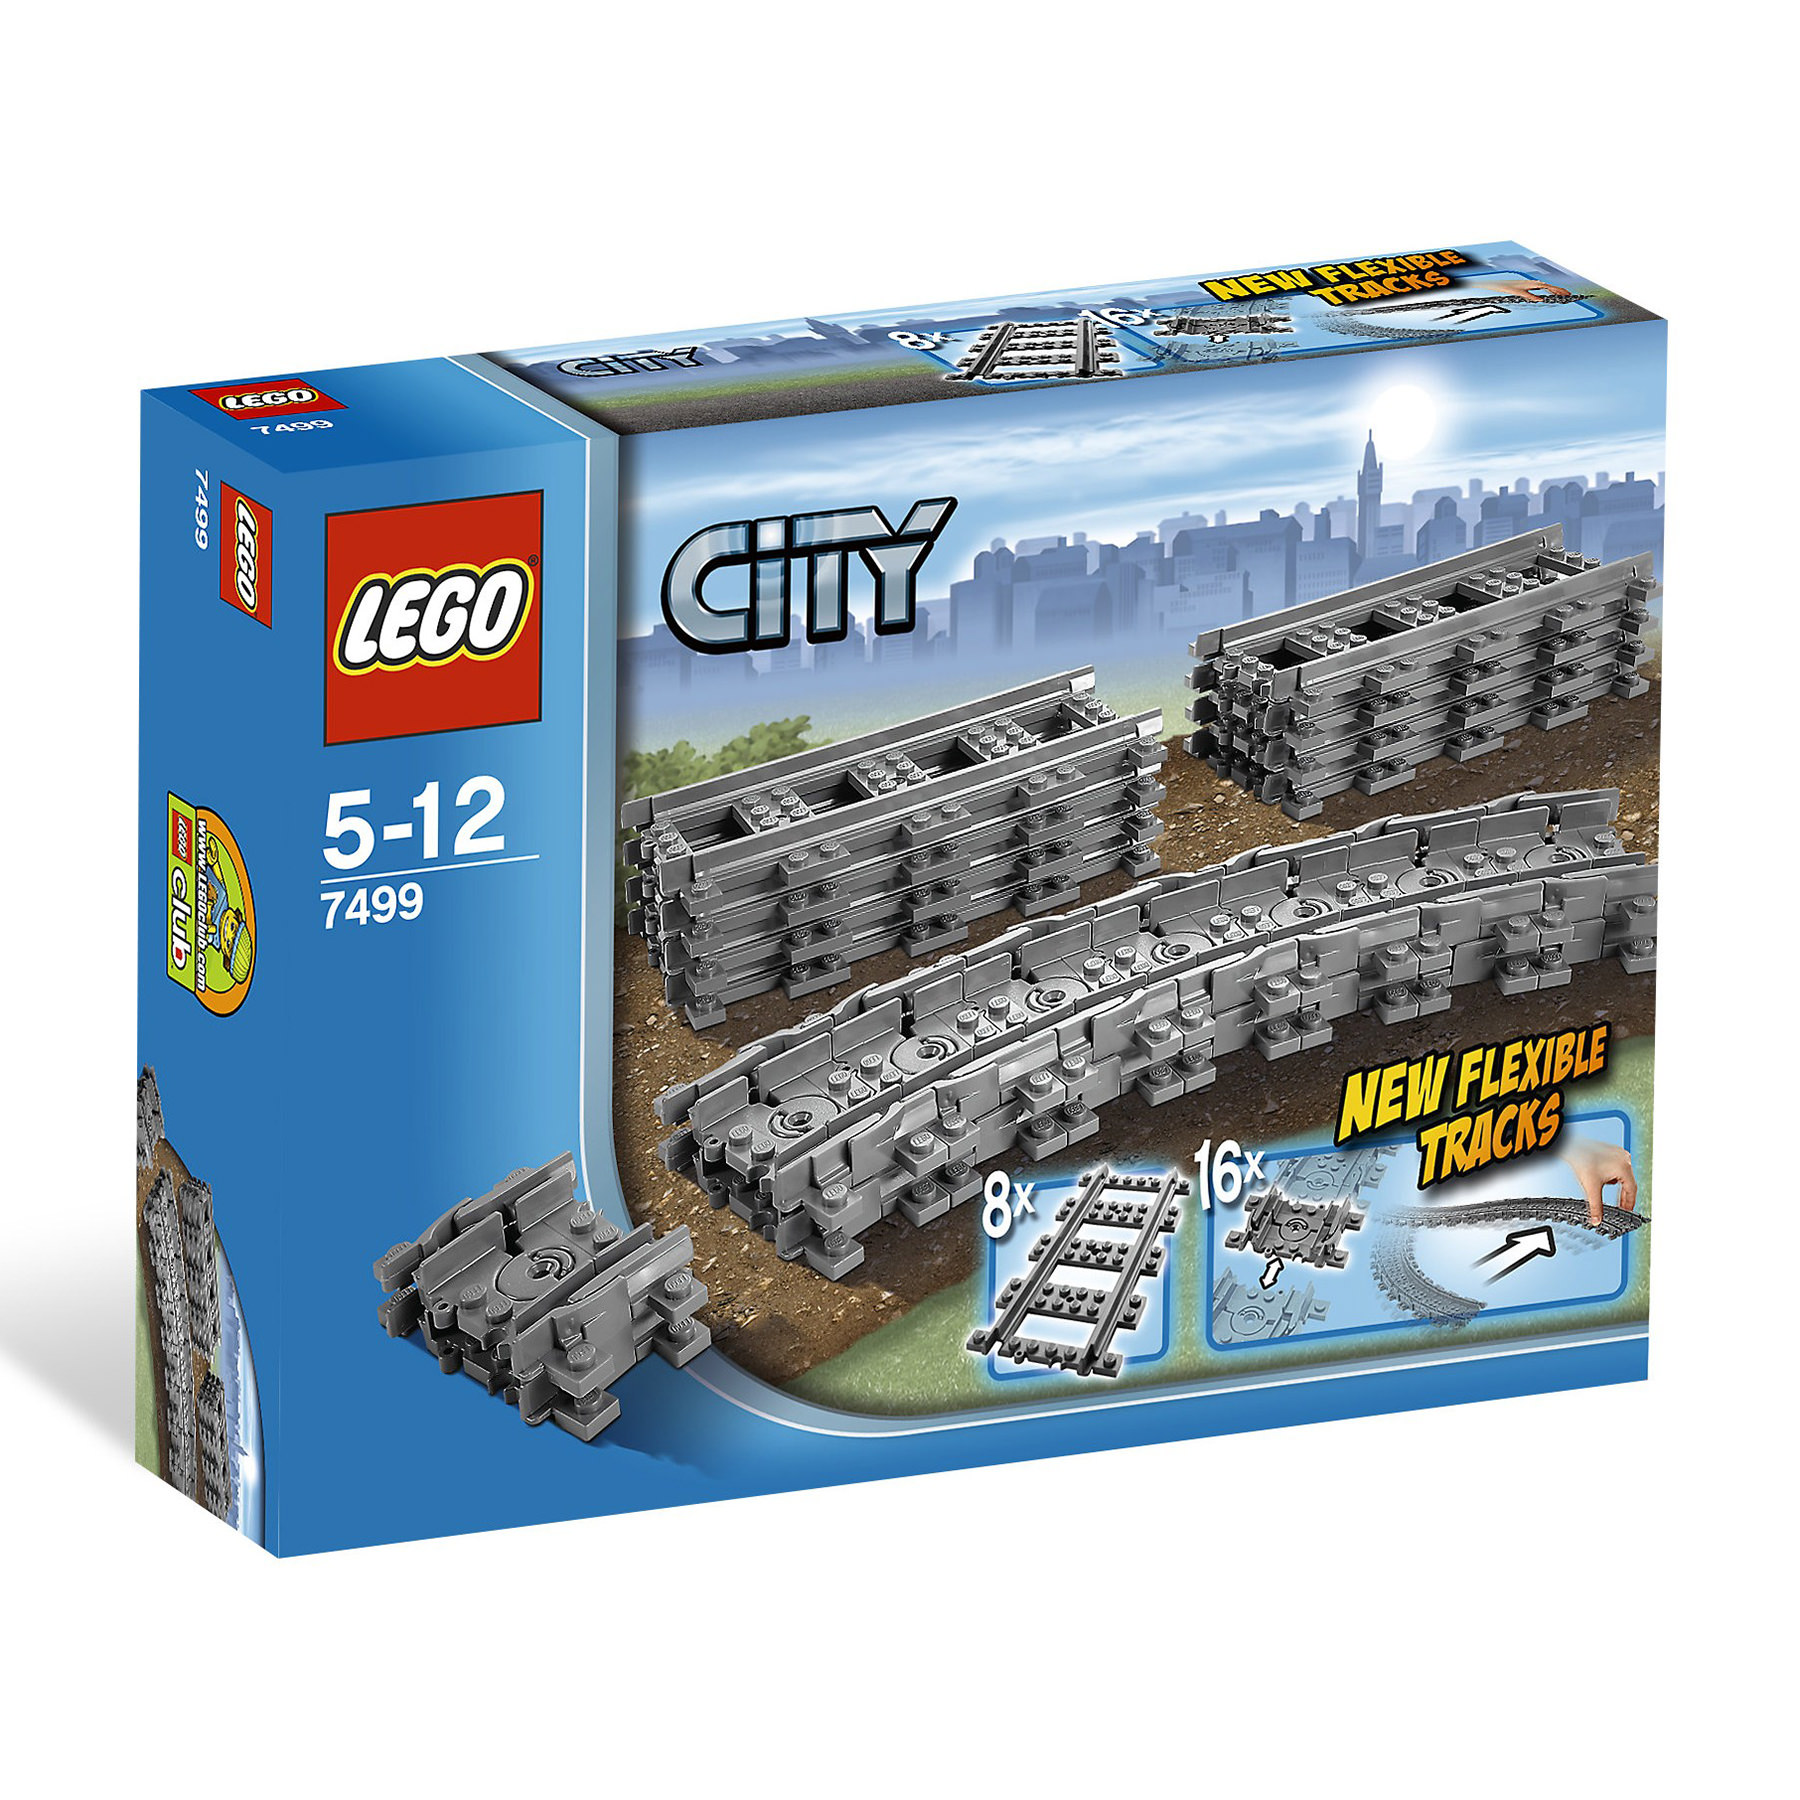 Lego 7499 City Flexible And Straight Train Tracks At Hobby